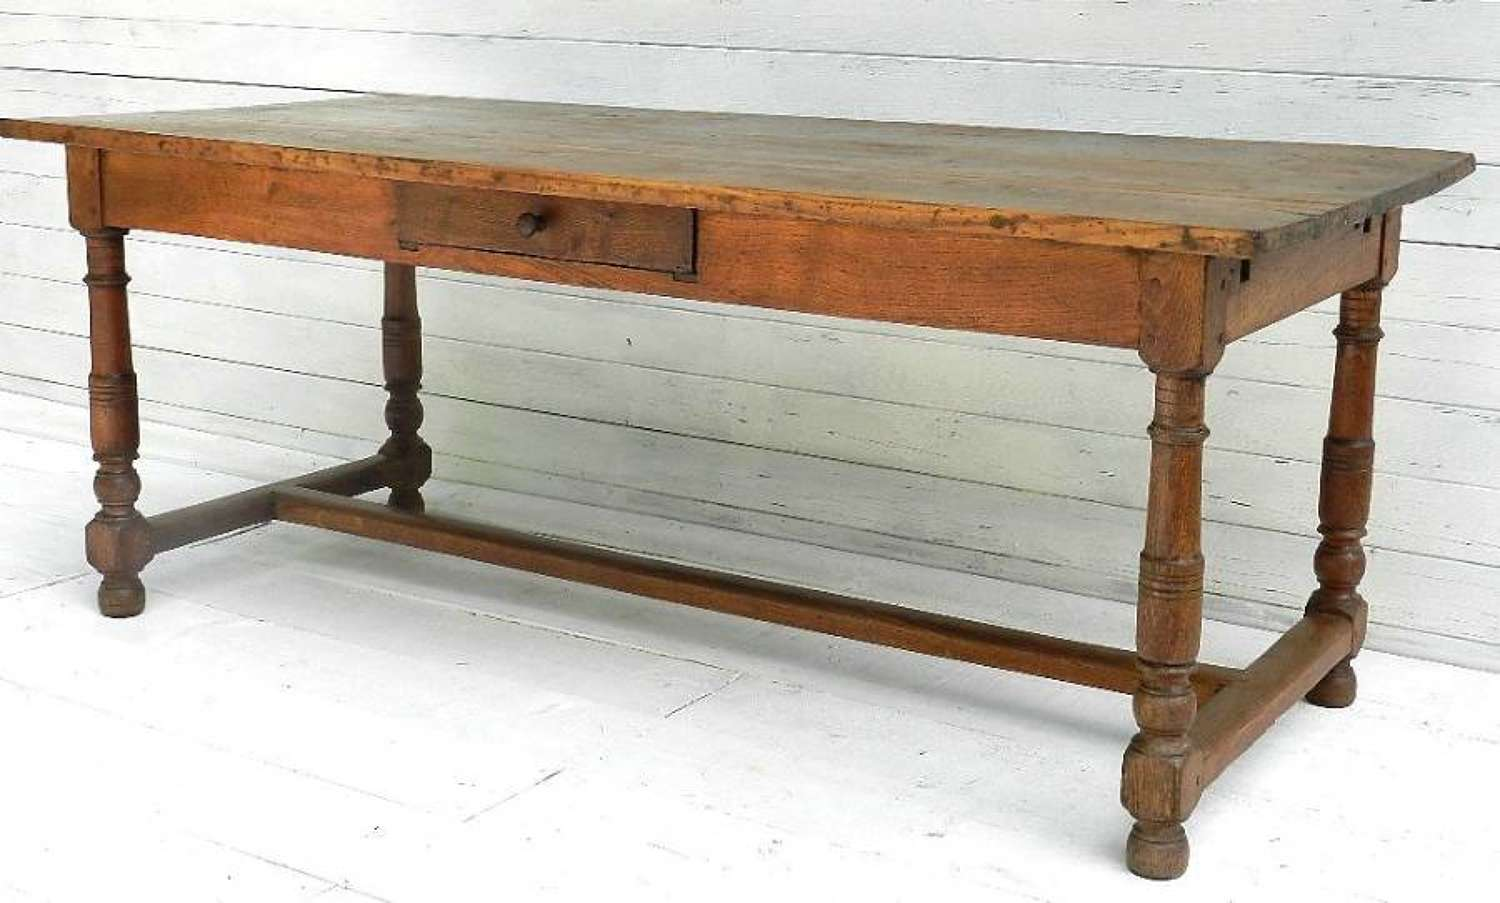 Late C18 FRENCH OAK PROVINCIAL DINING TABLE REFECTORY FARMHOUSE KITCHEN